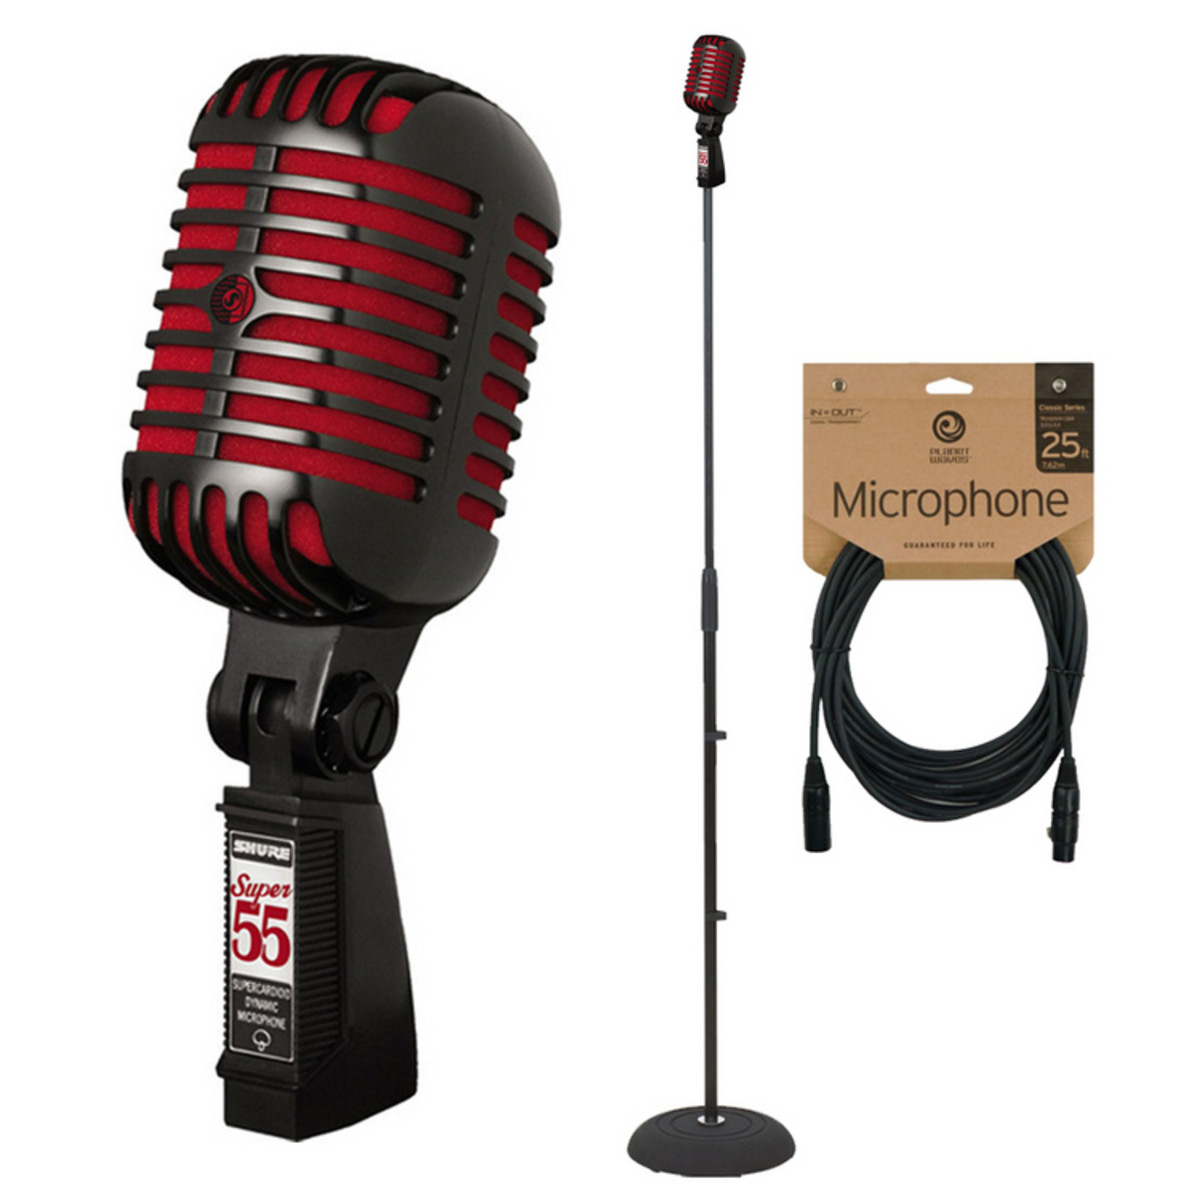 Shure Super 55 Special Edition Mic + Stand and Cable at Gear4music.com